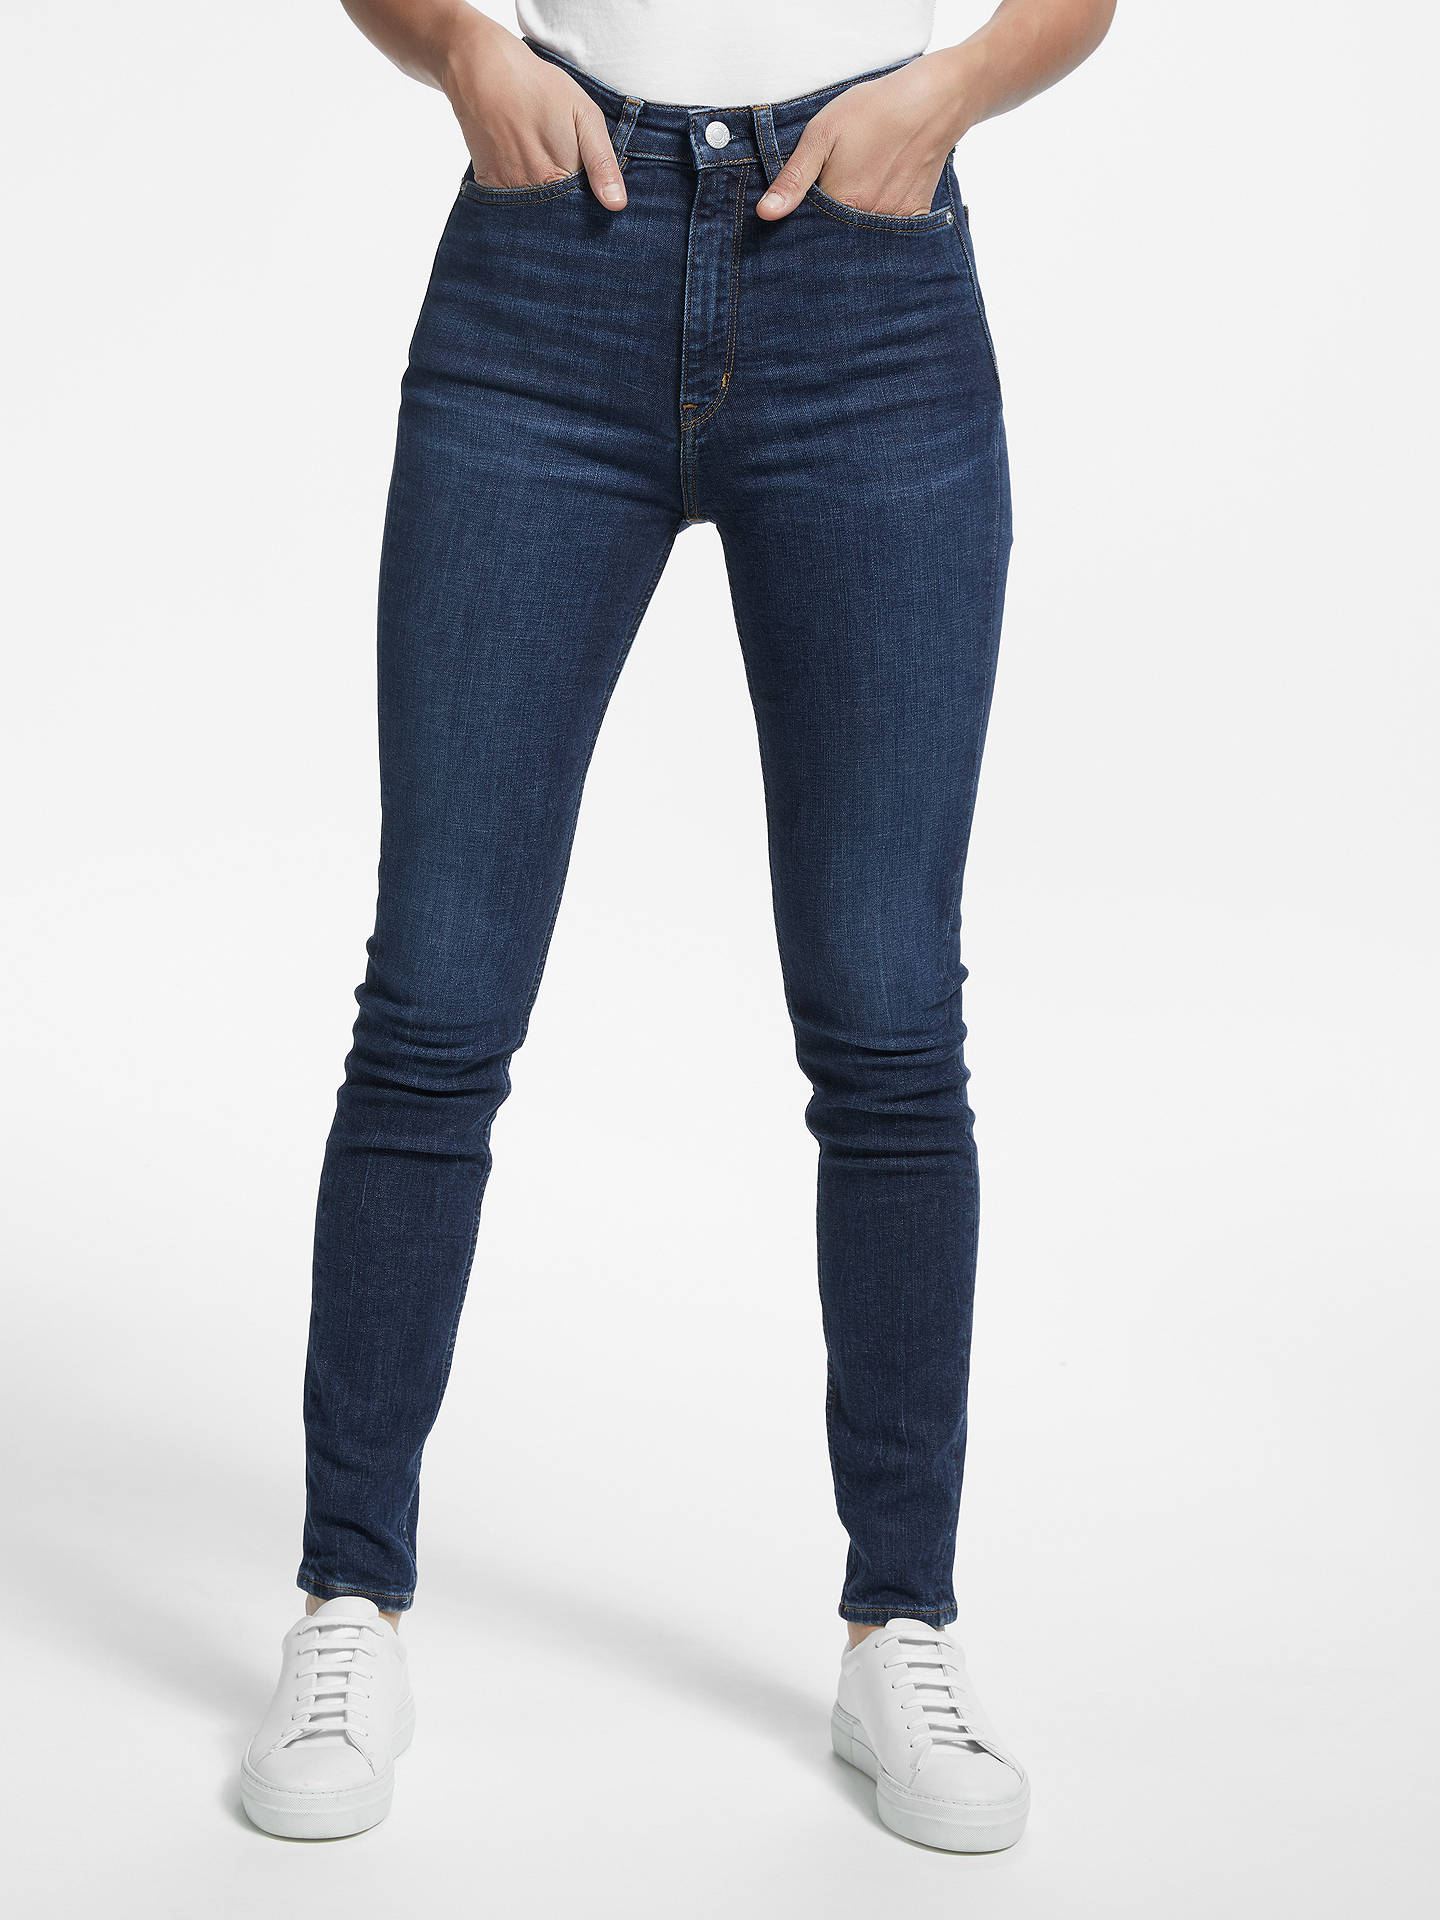 Buy Calvin Klein High Rise Skinny Jeans, Amsterdam Dark Blue, W27/L30 Online at johnlewis.com